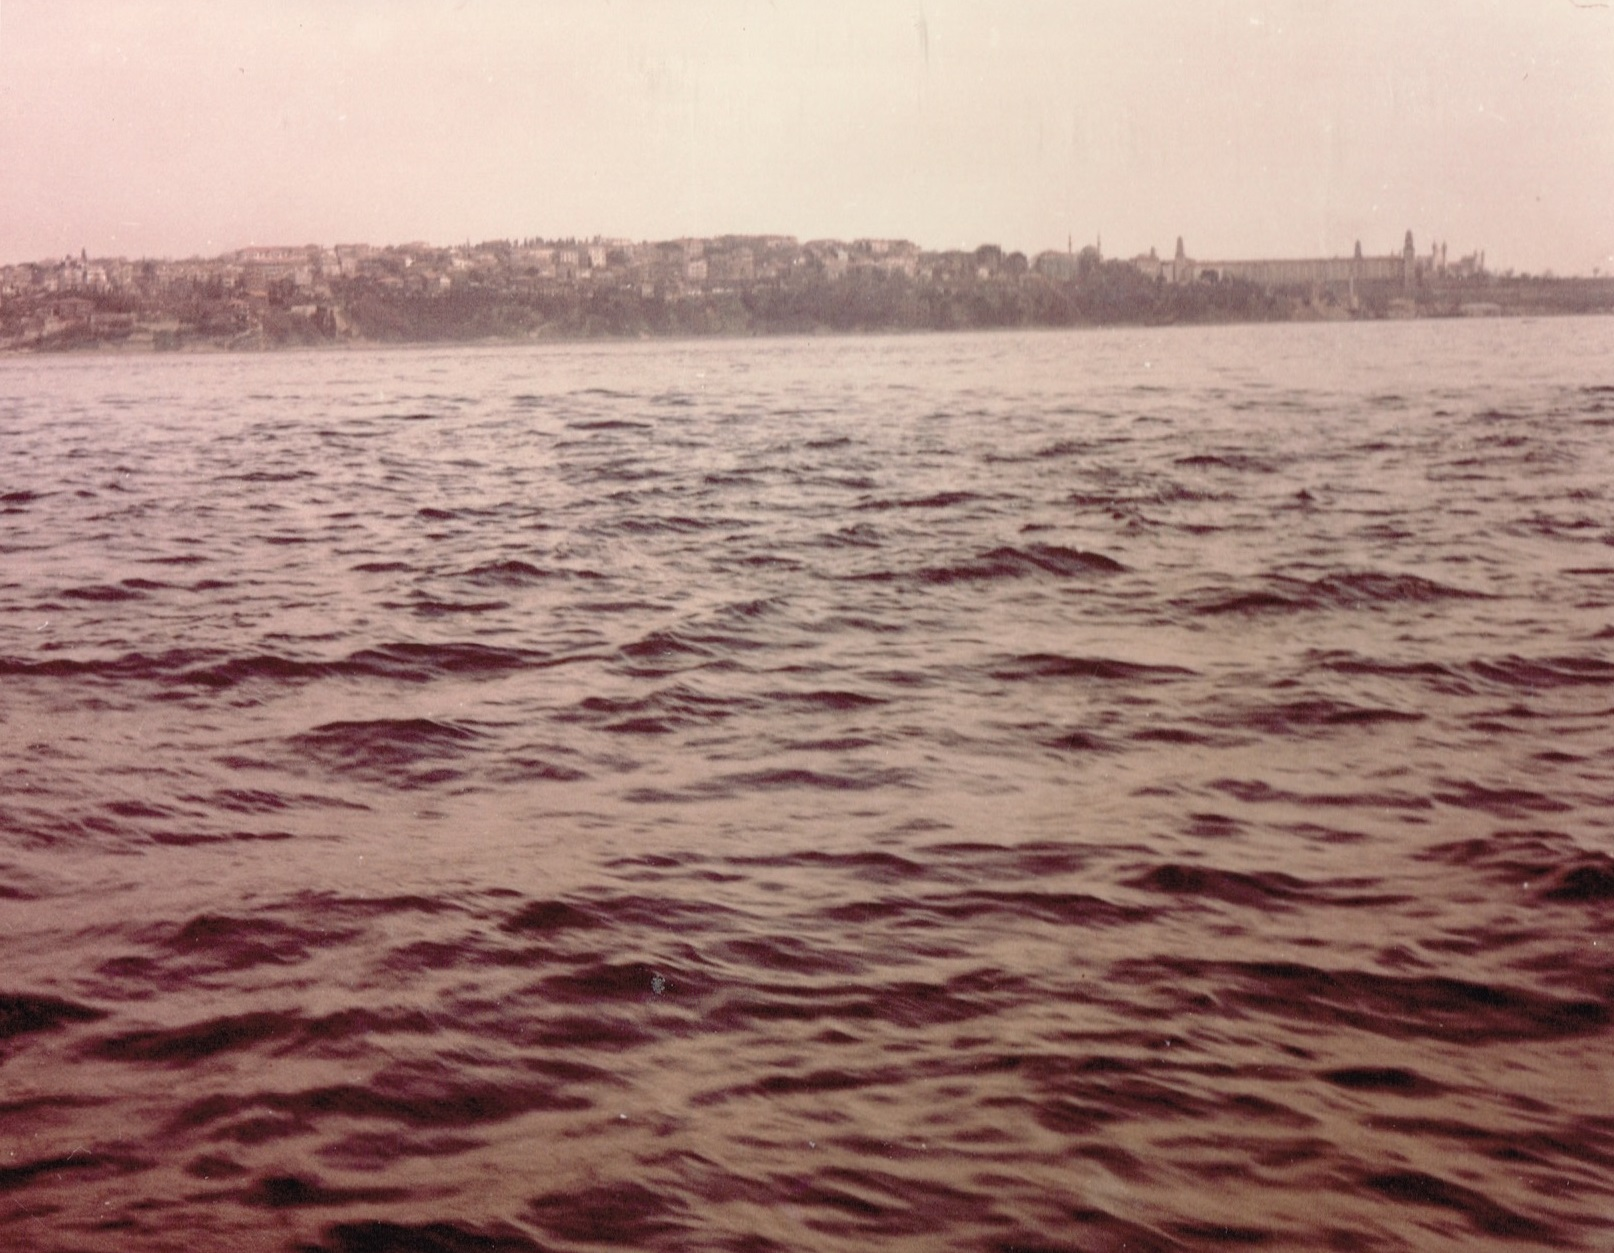 Ferry-Istanbul-1965-5